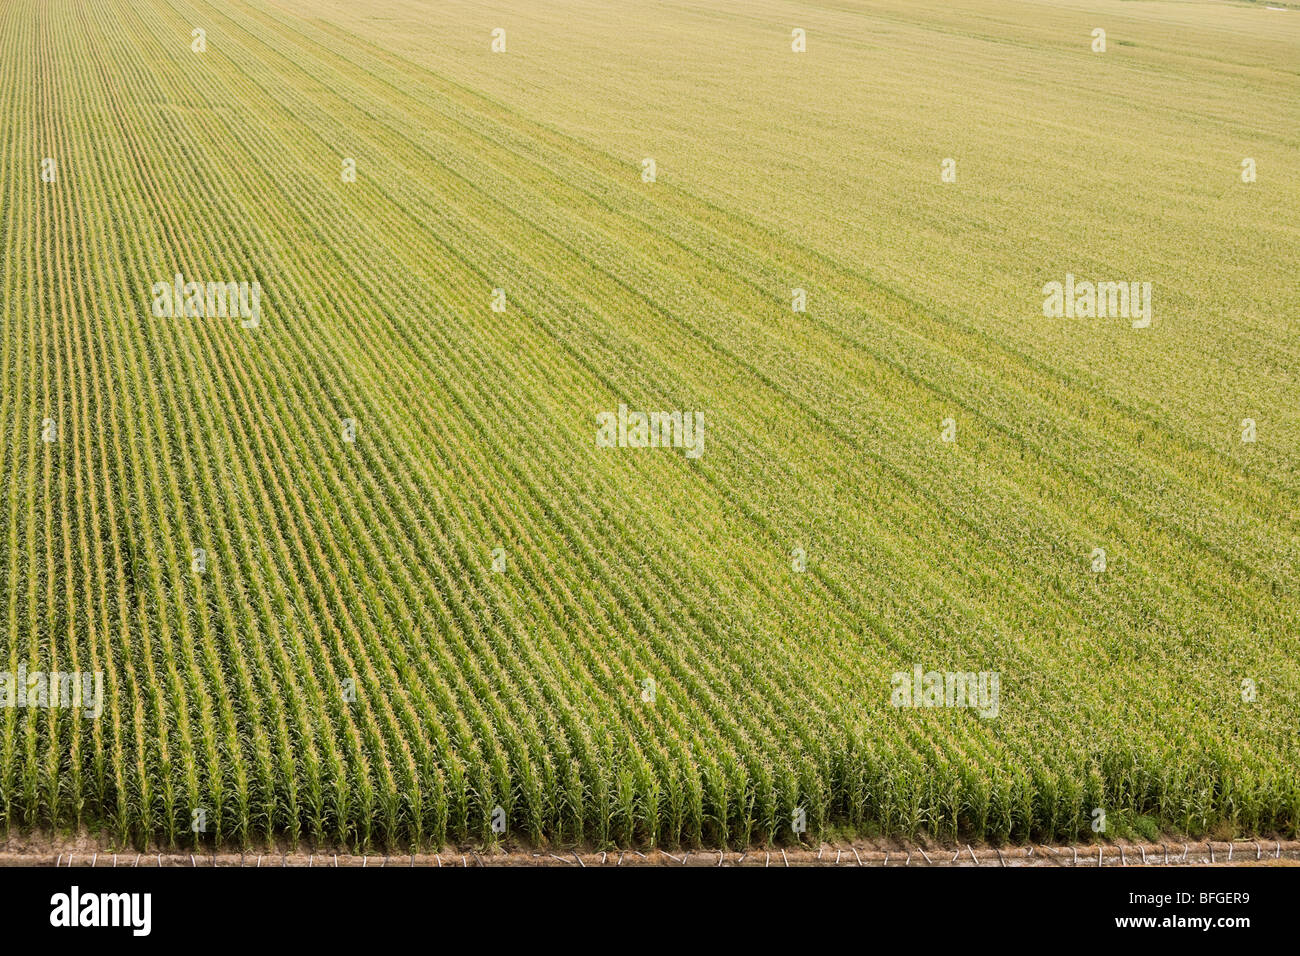 Aerial view of an American corn maize field with irrigation in summer. North Platte, Nebraska, Great Plains, USA - Stock Image